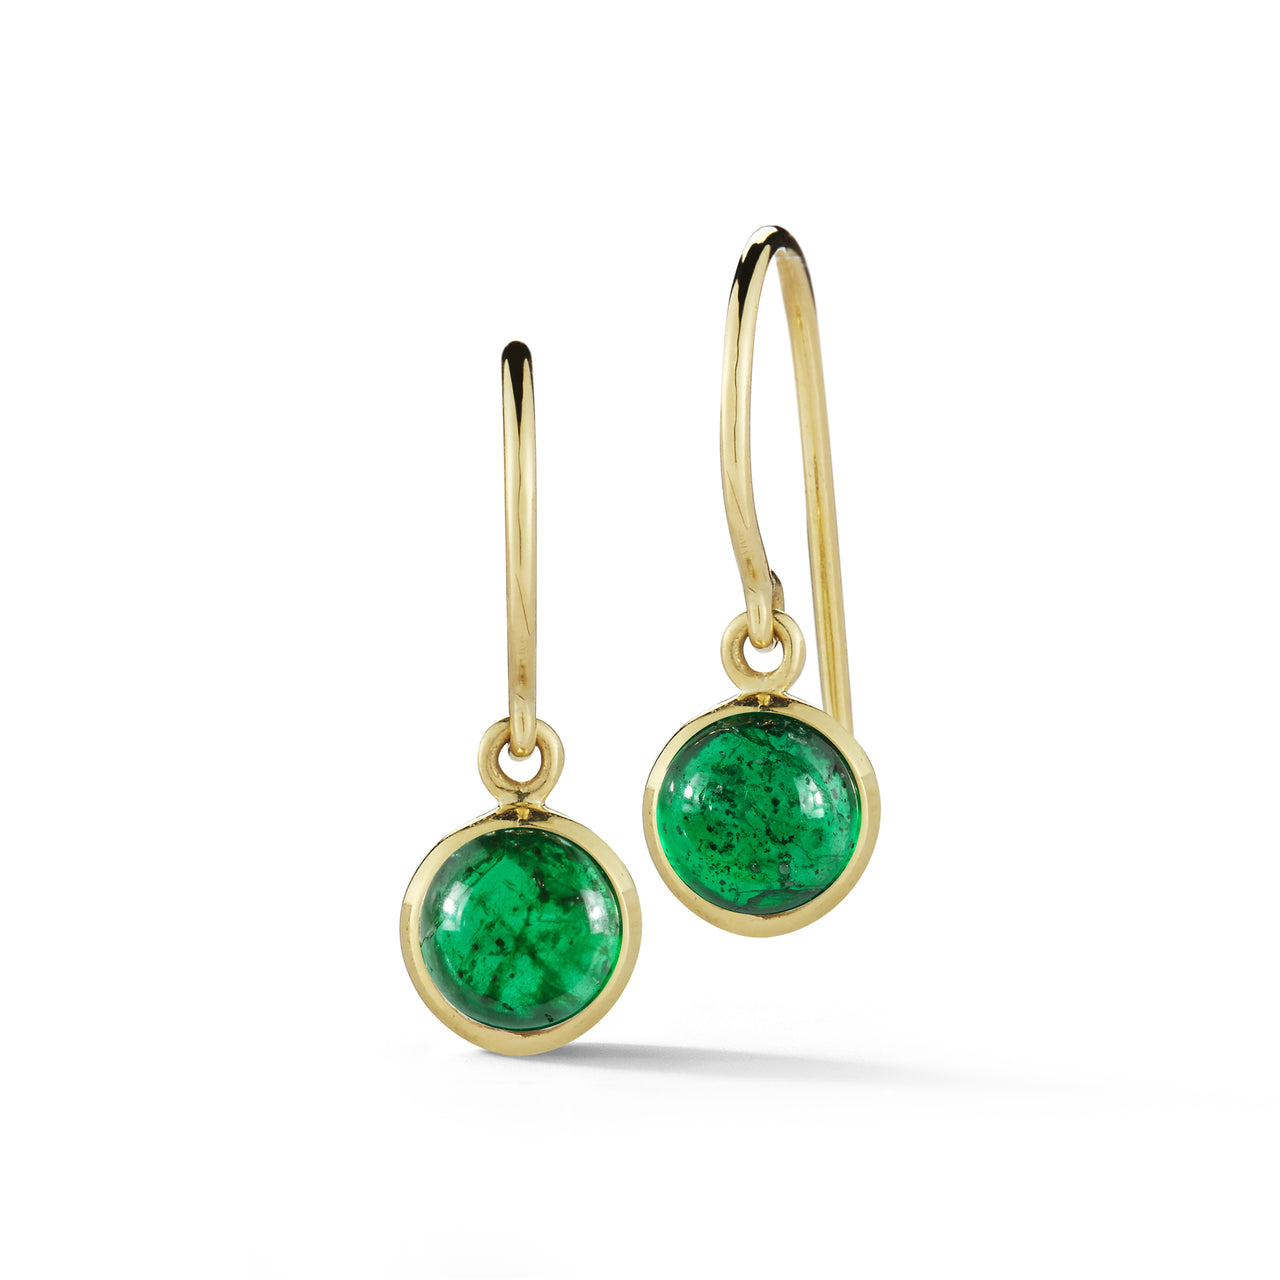 18k gold simple emerald workplace earrings by finn by candice pool neistat